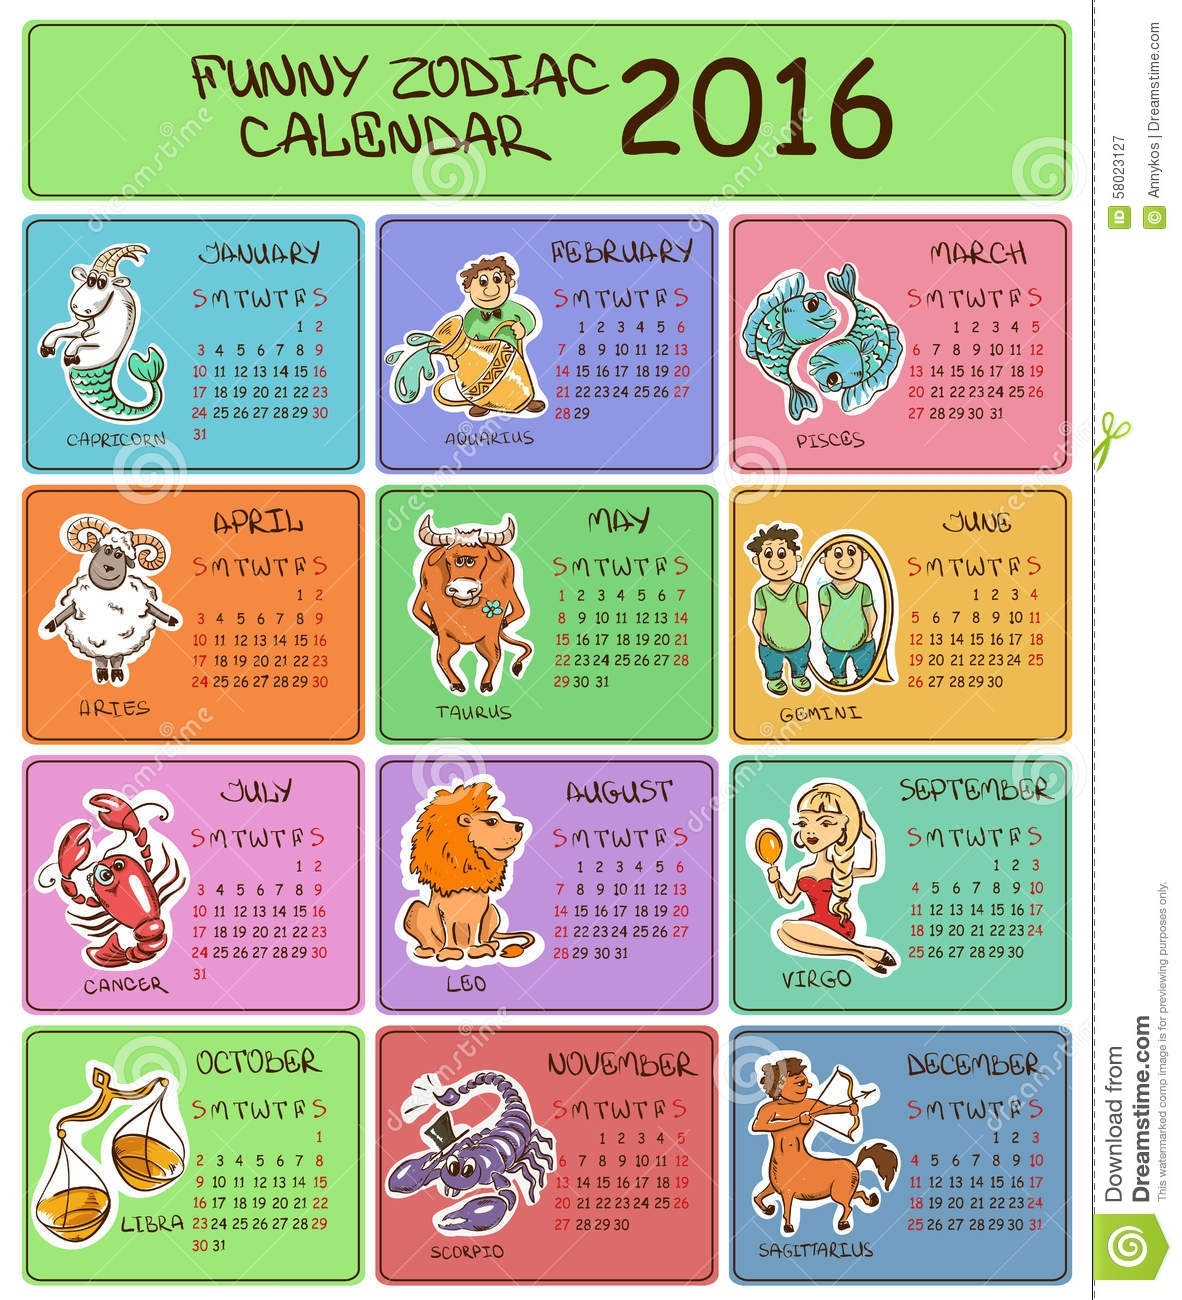 2016 Calendar Template With Zodiac Signs. Stock Vector Calendar For Zodiac Signs